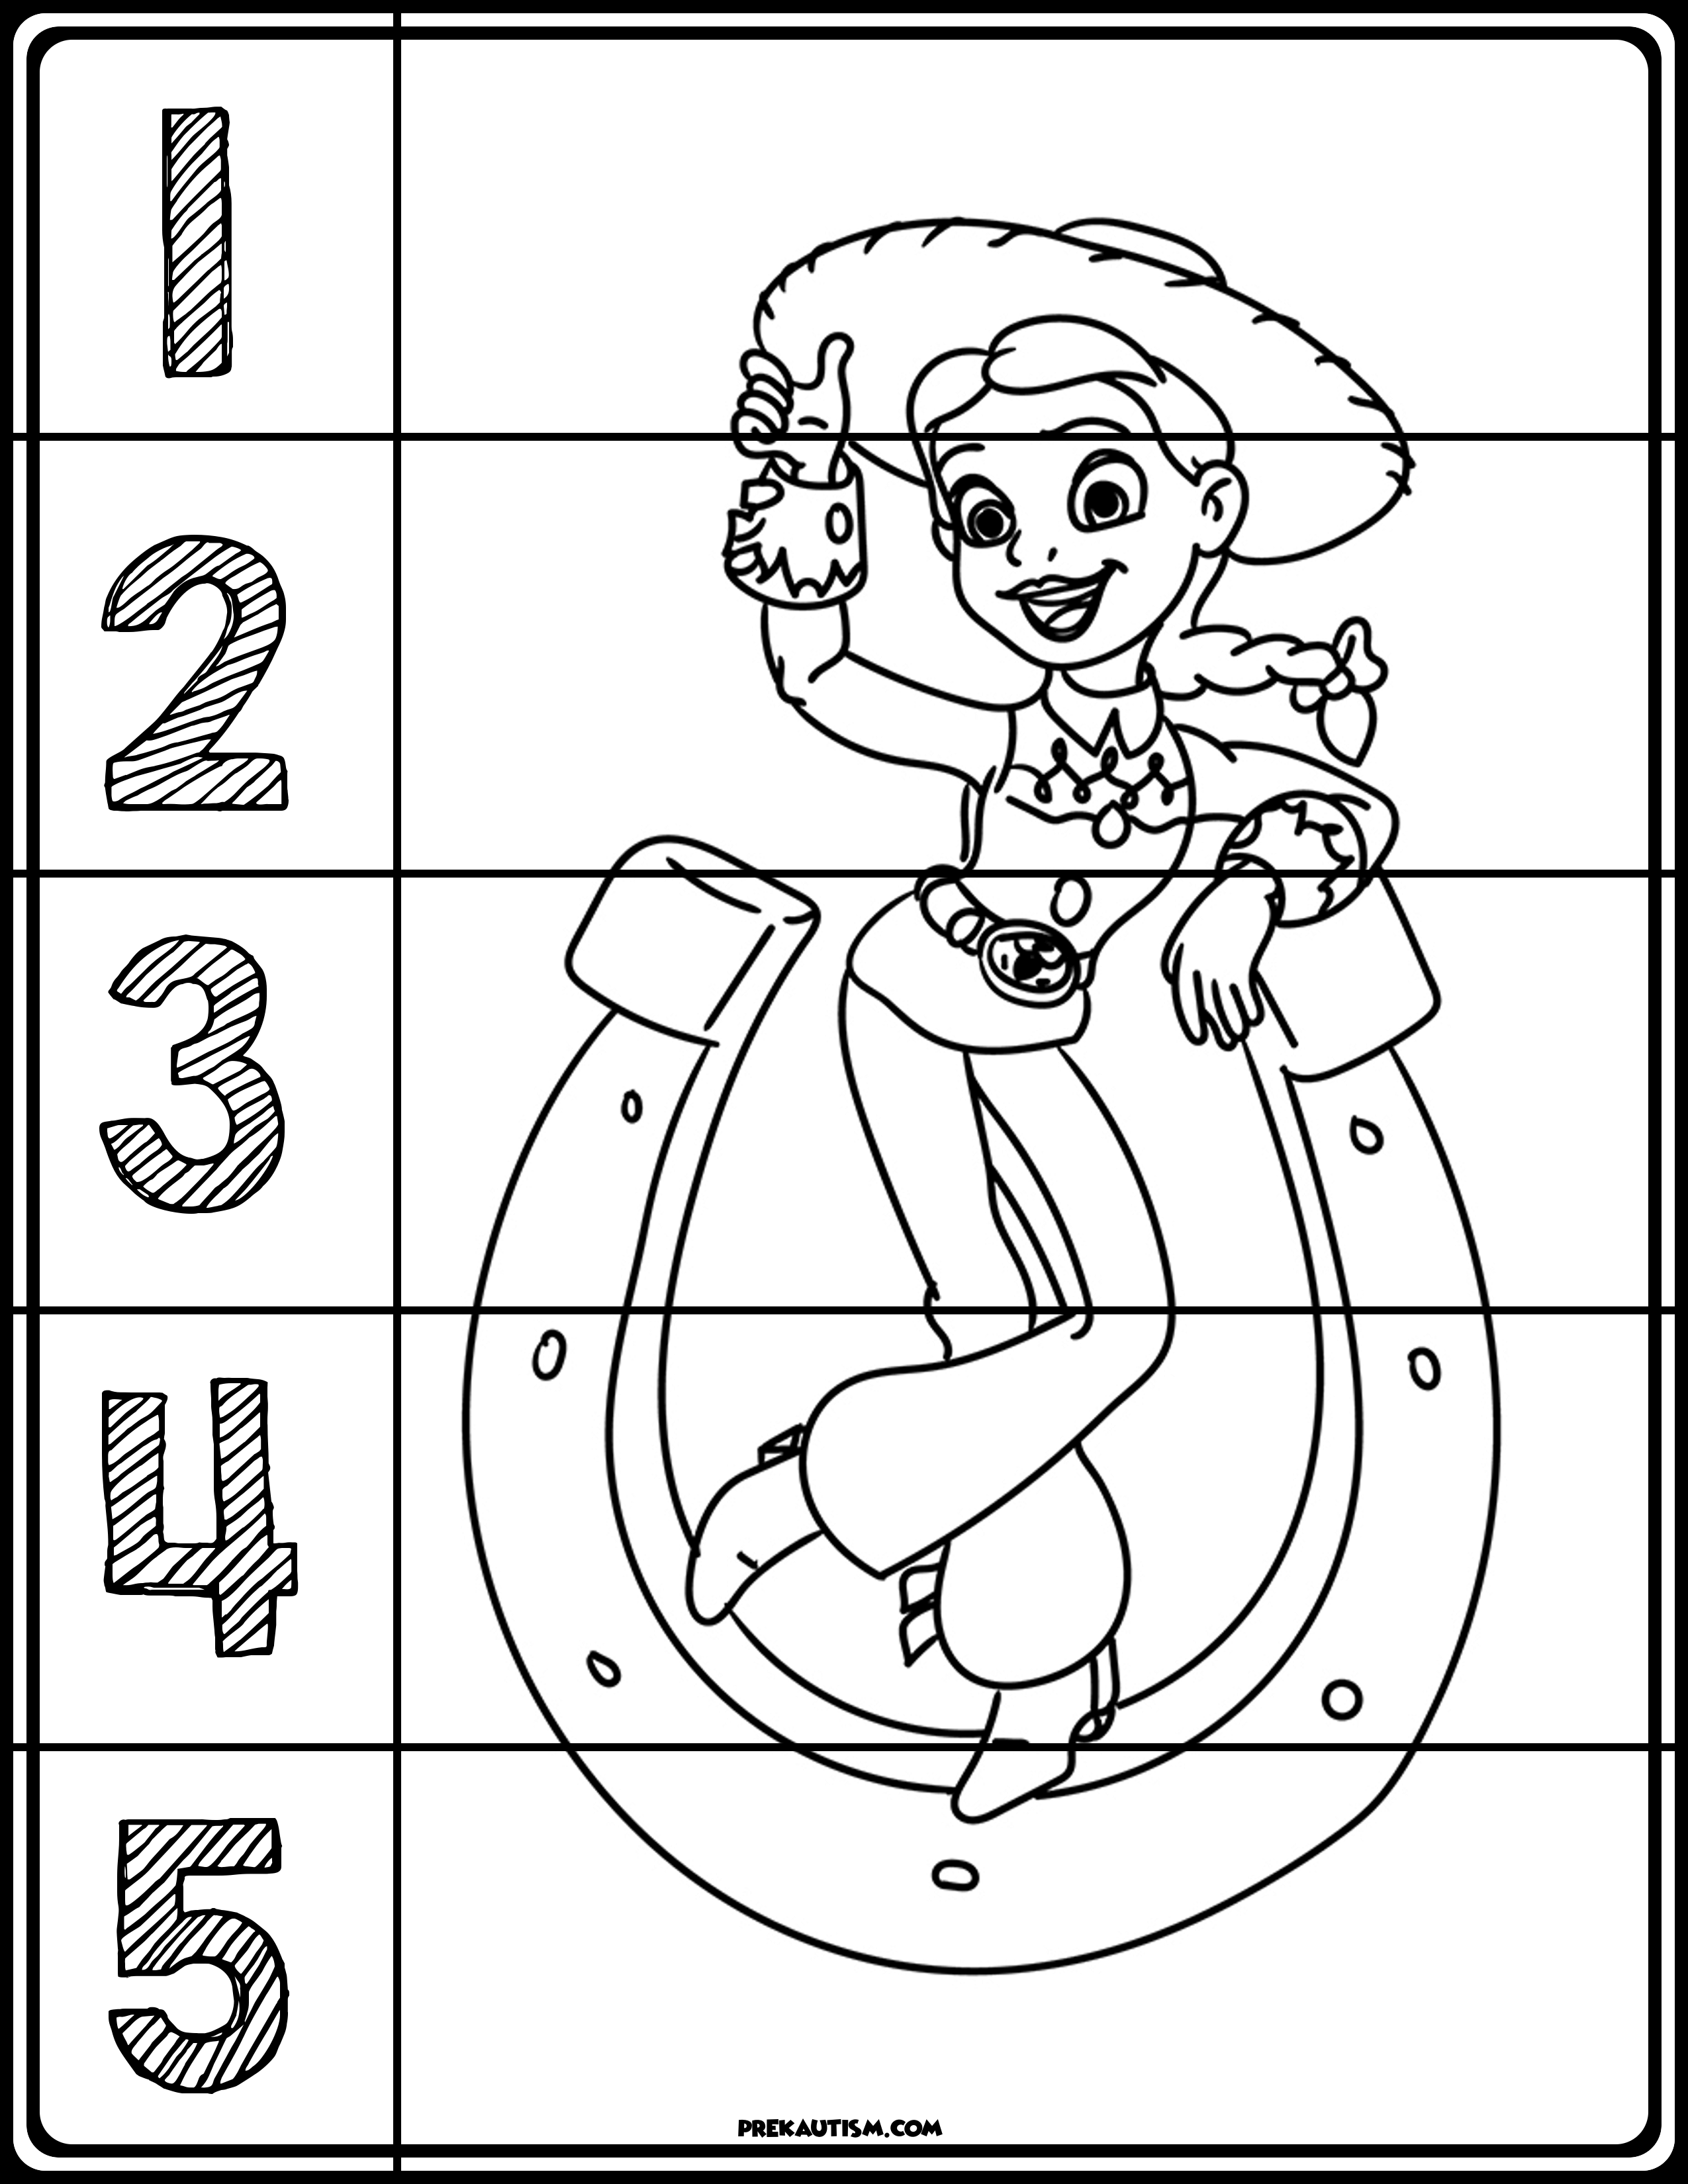 Toy Story Puzzles Toy Story Printables Toy Story Toy Story Theme